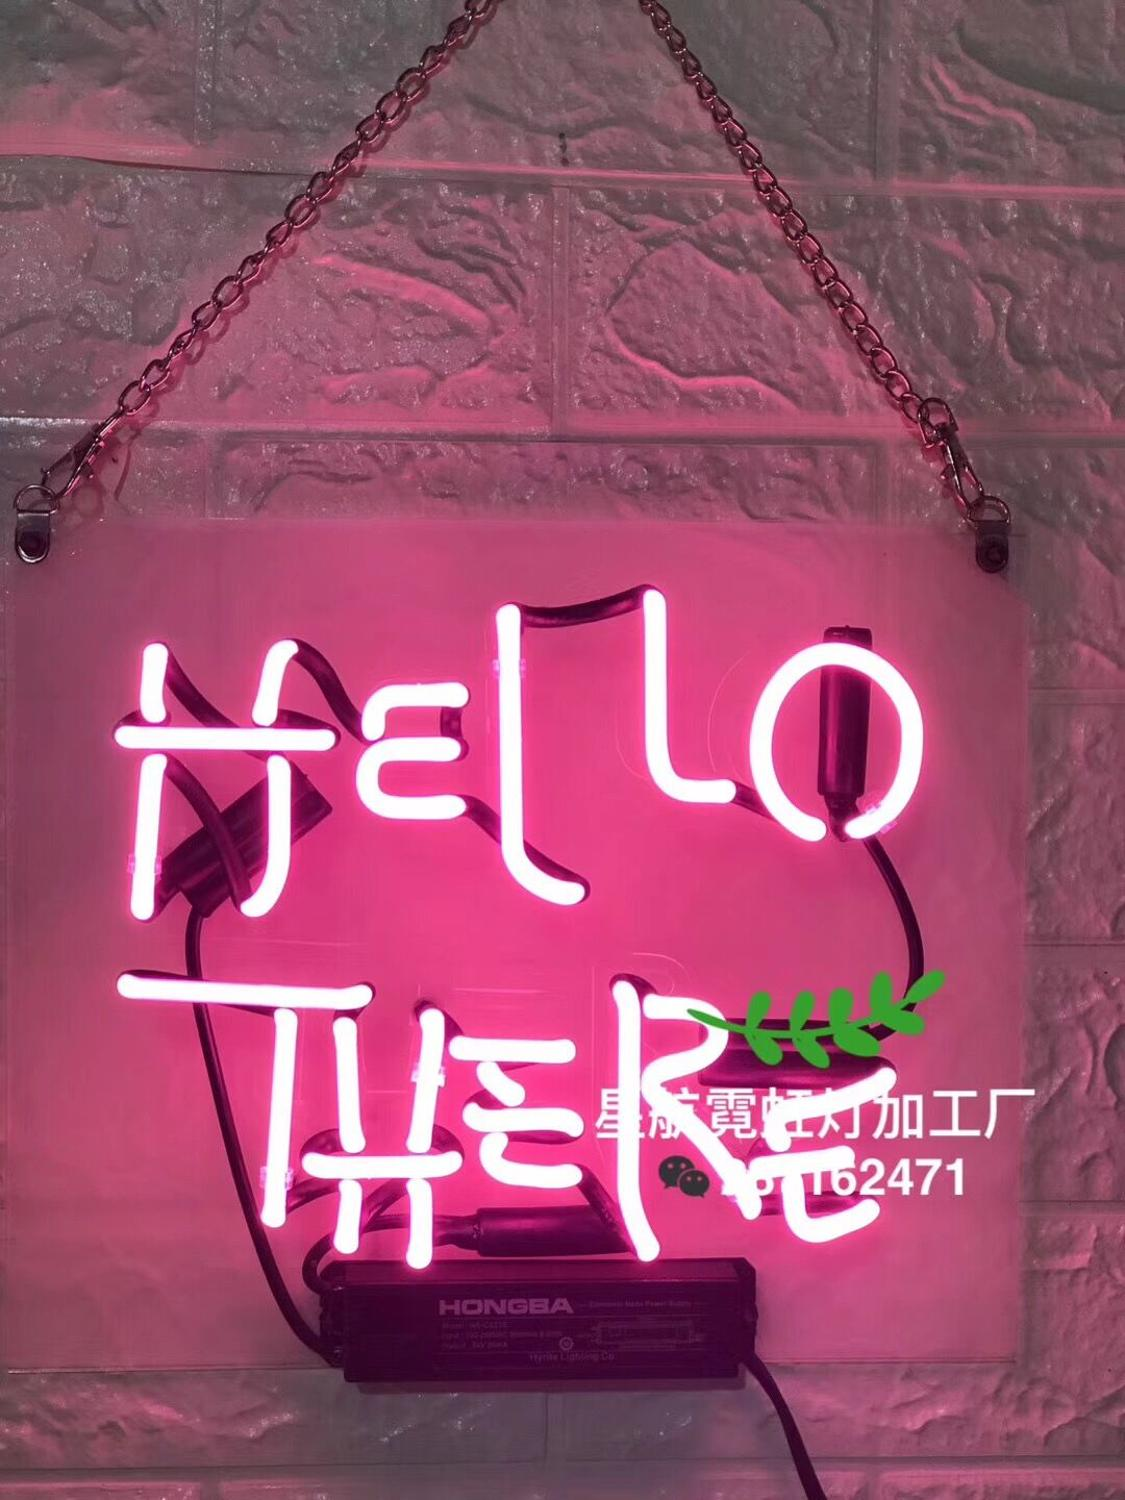 New HIGH LIFE Beer Neon Sign Bar Sinal de Vidro Real Luz Neon Beer Sign With Hello There